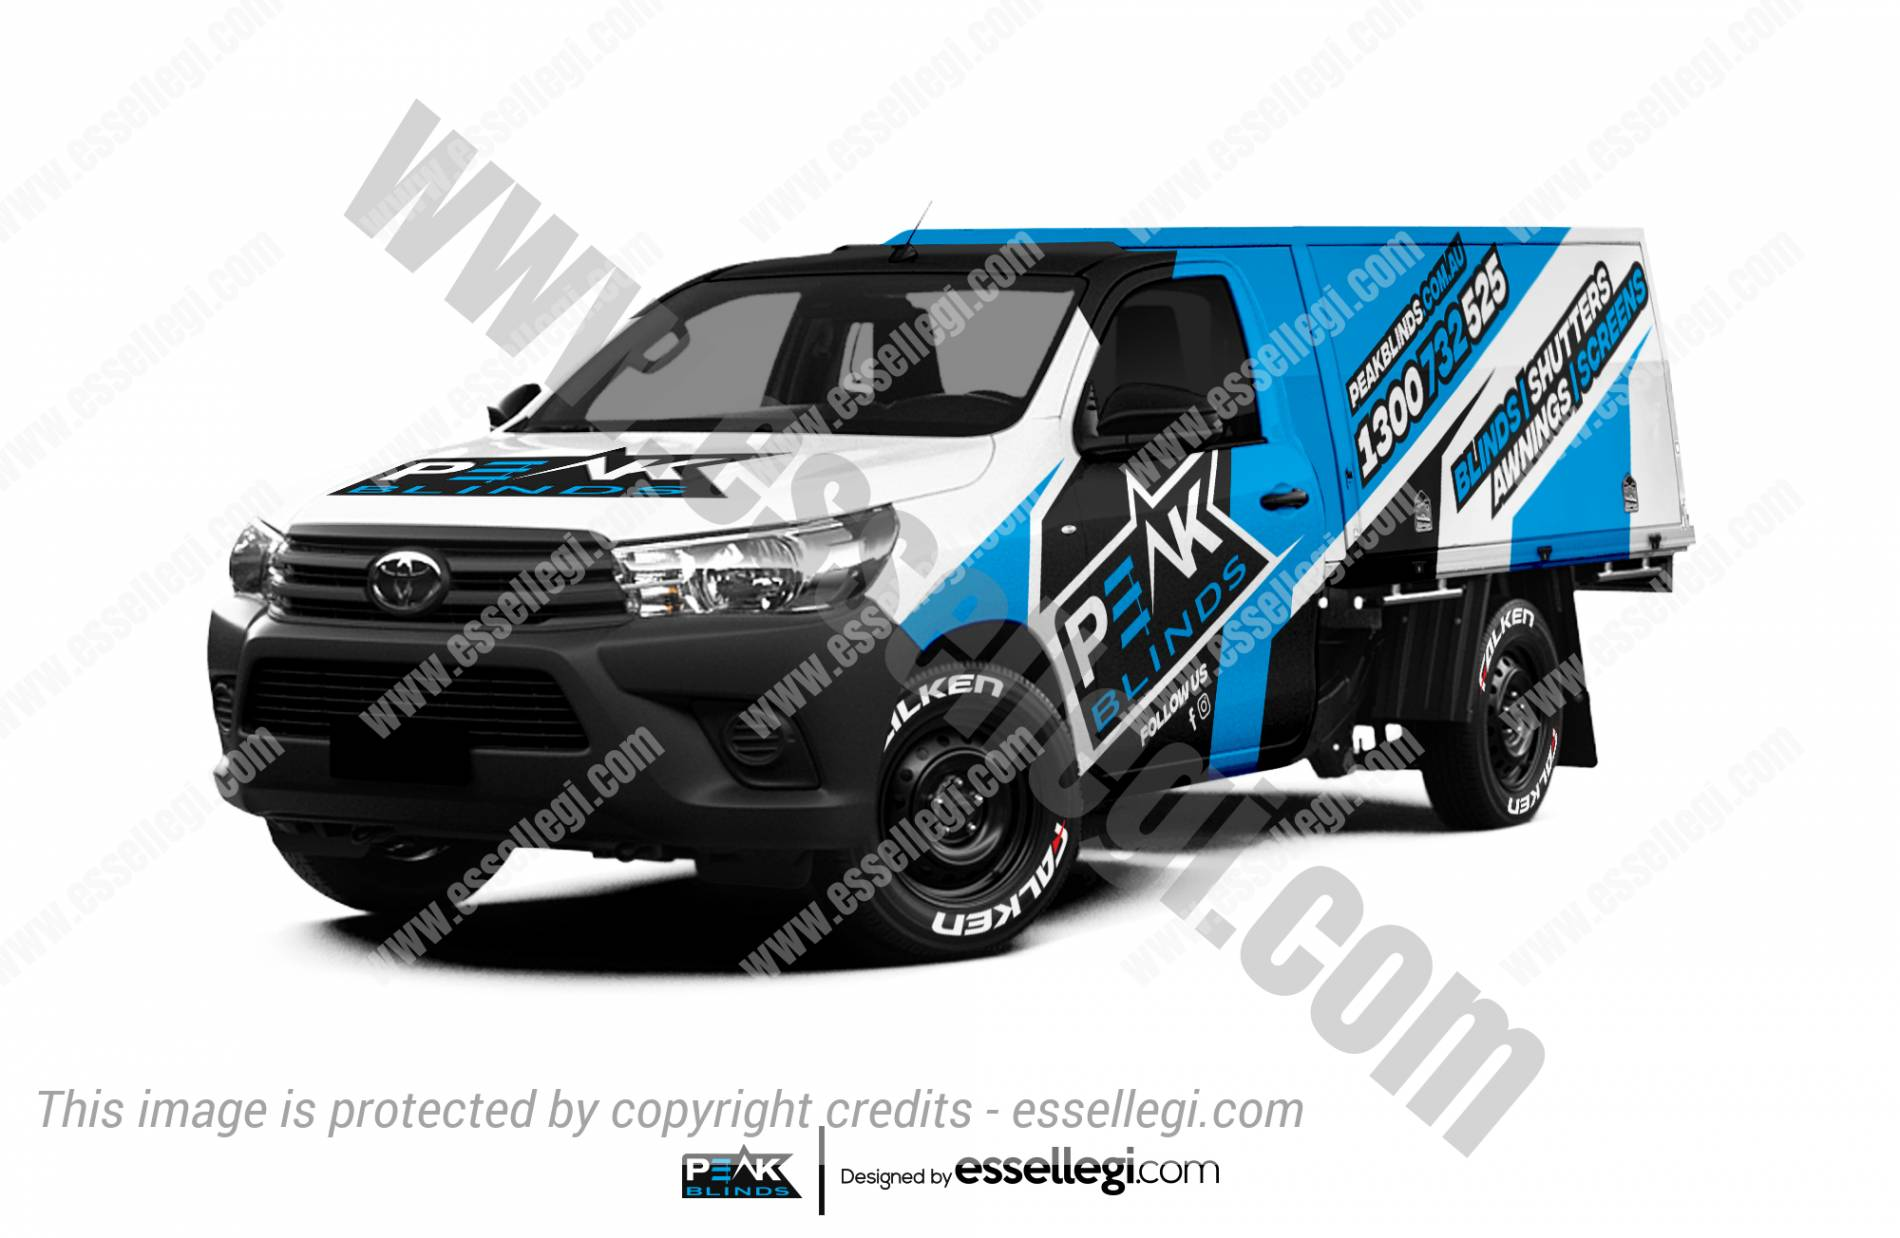 Toyota Hilux Wrap Design. Toyota Hilux Wrap | Truck Wrap Design by Essellegi. Truck Signs, Van Signage, Van Wrapping, Van Signwriting, Van Wrap Designer, Signs for Van, Van Logo, Van Graphic by Essellegi.